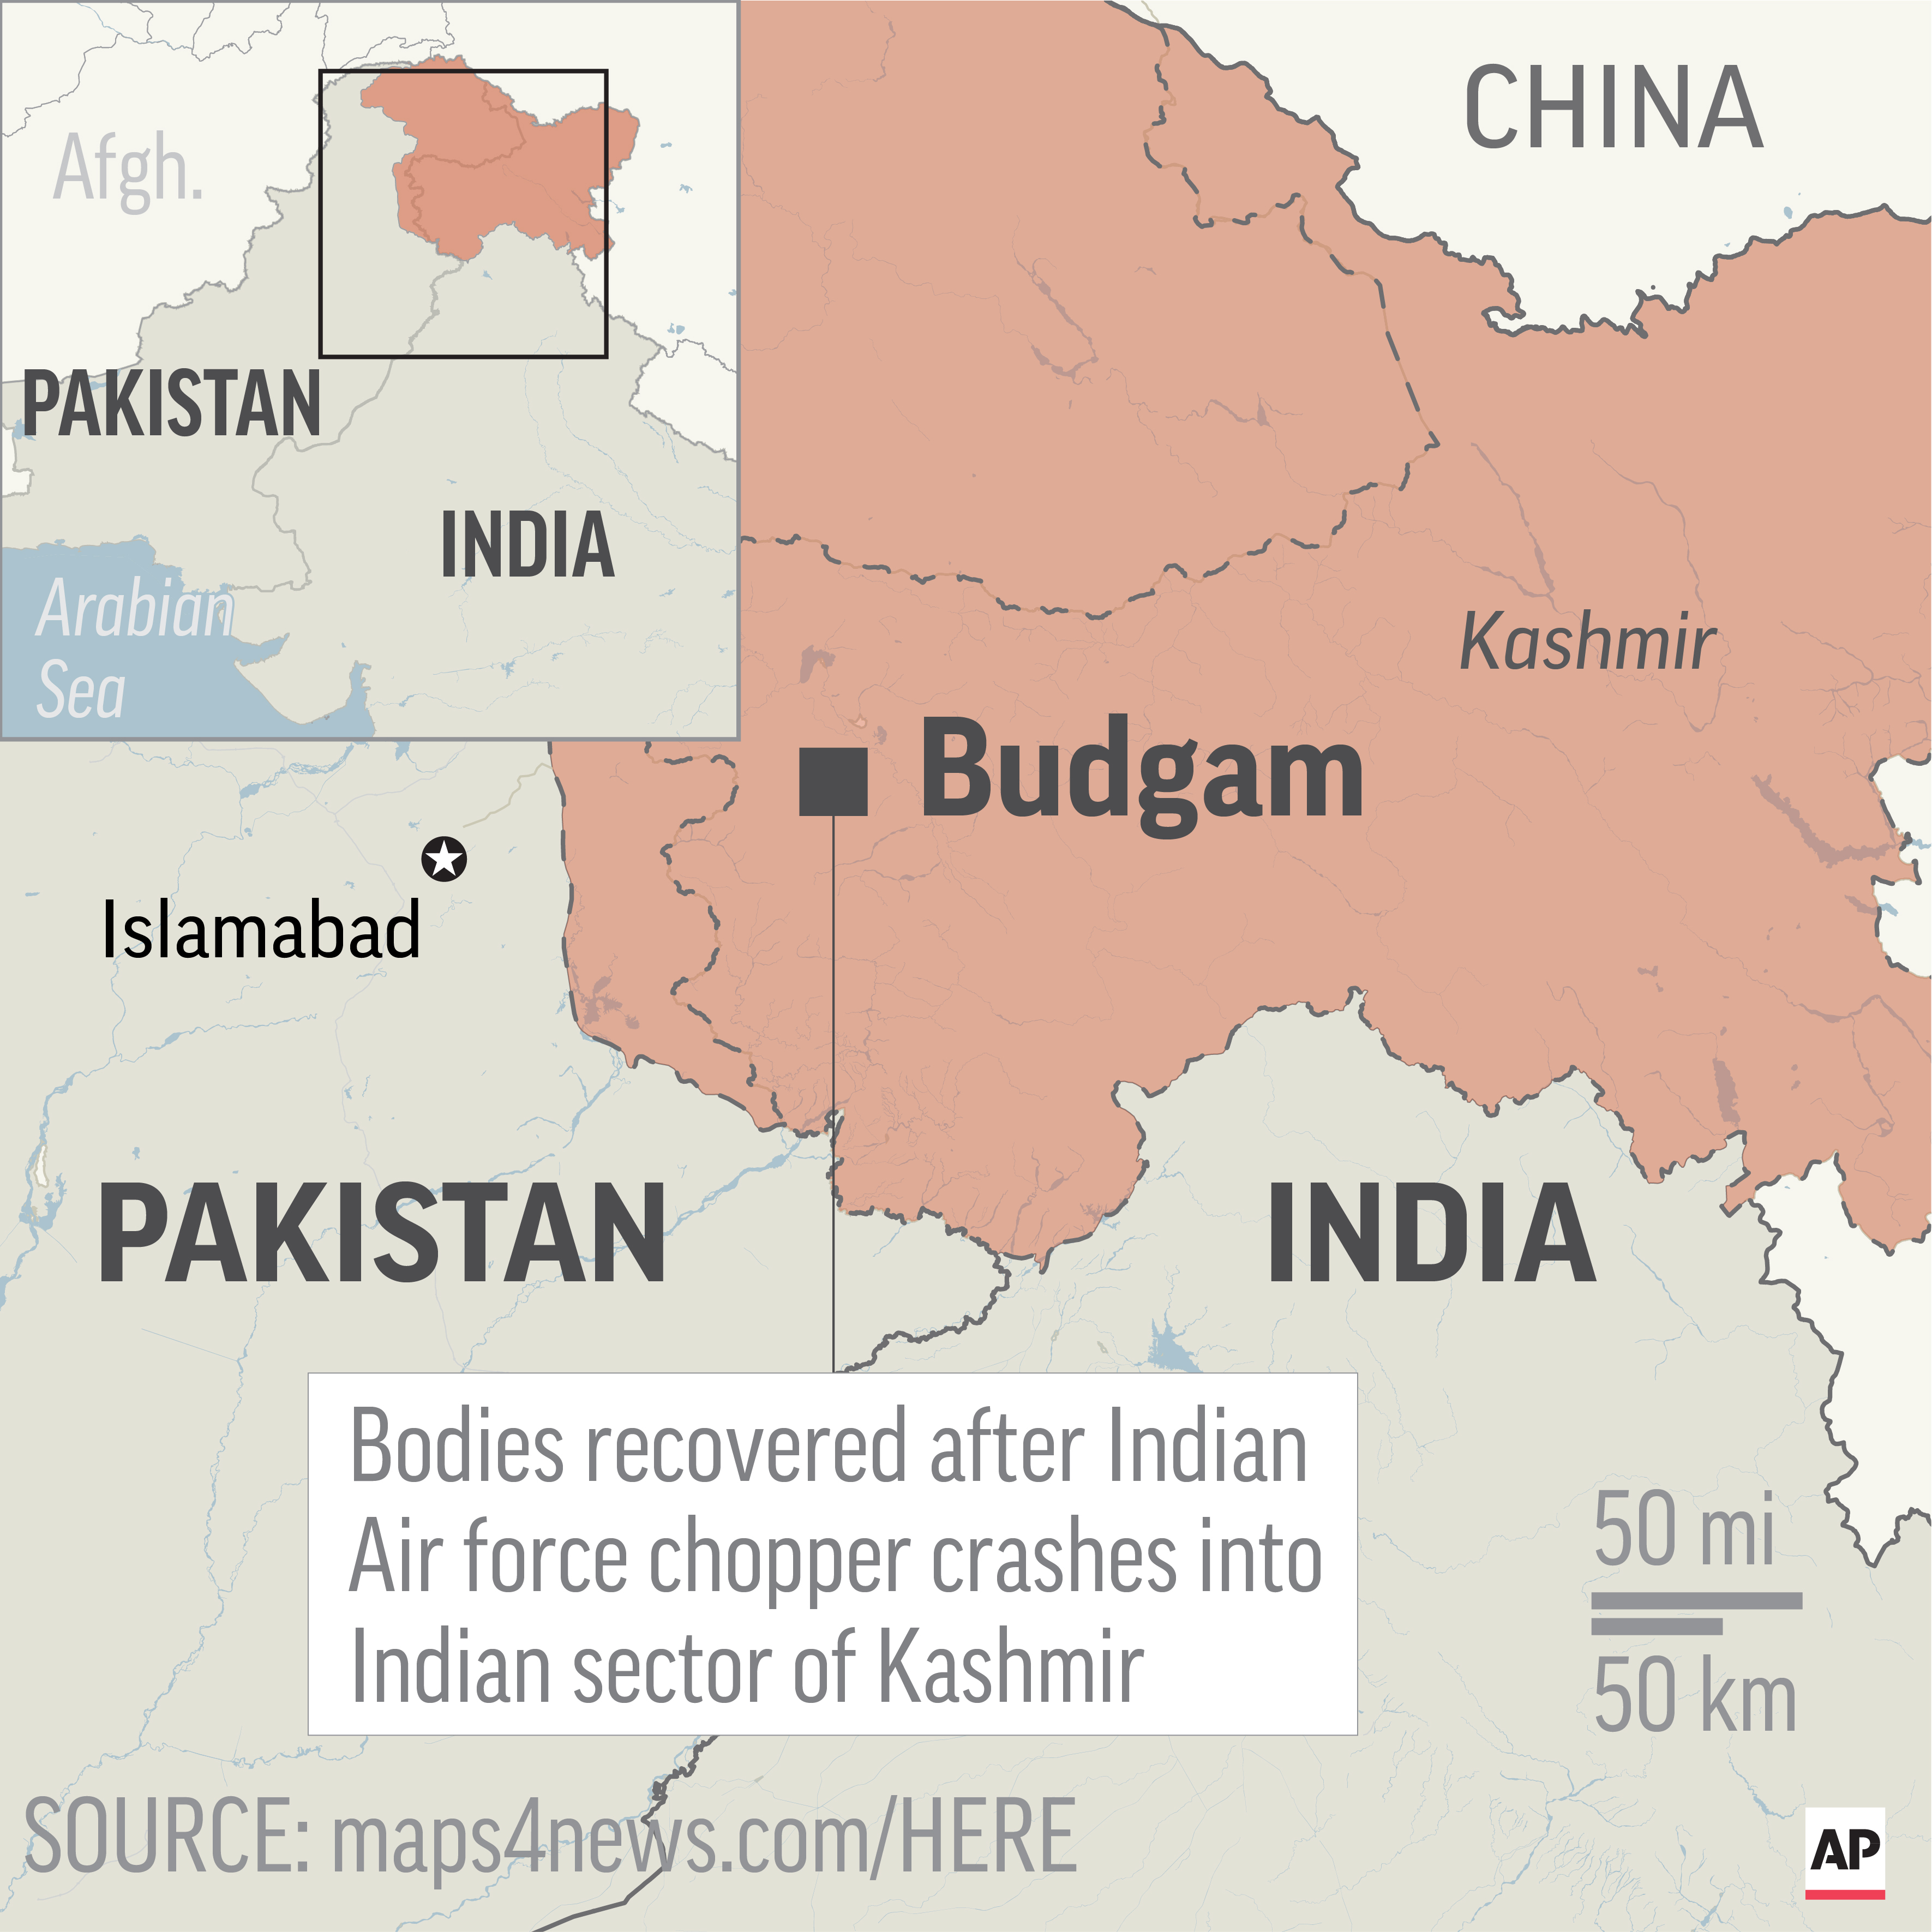 Map locates Budgam in Kashmmir, where bodies were recovered after an Indian air force helicopter crashed; 2c x 3 inches; 96.3 mm x 76 mm;